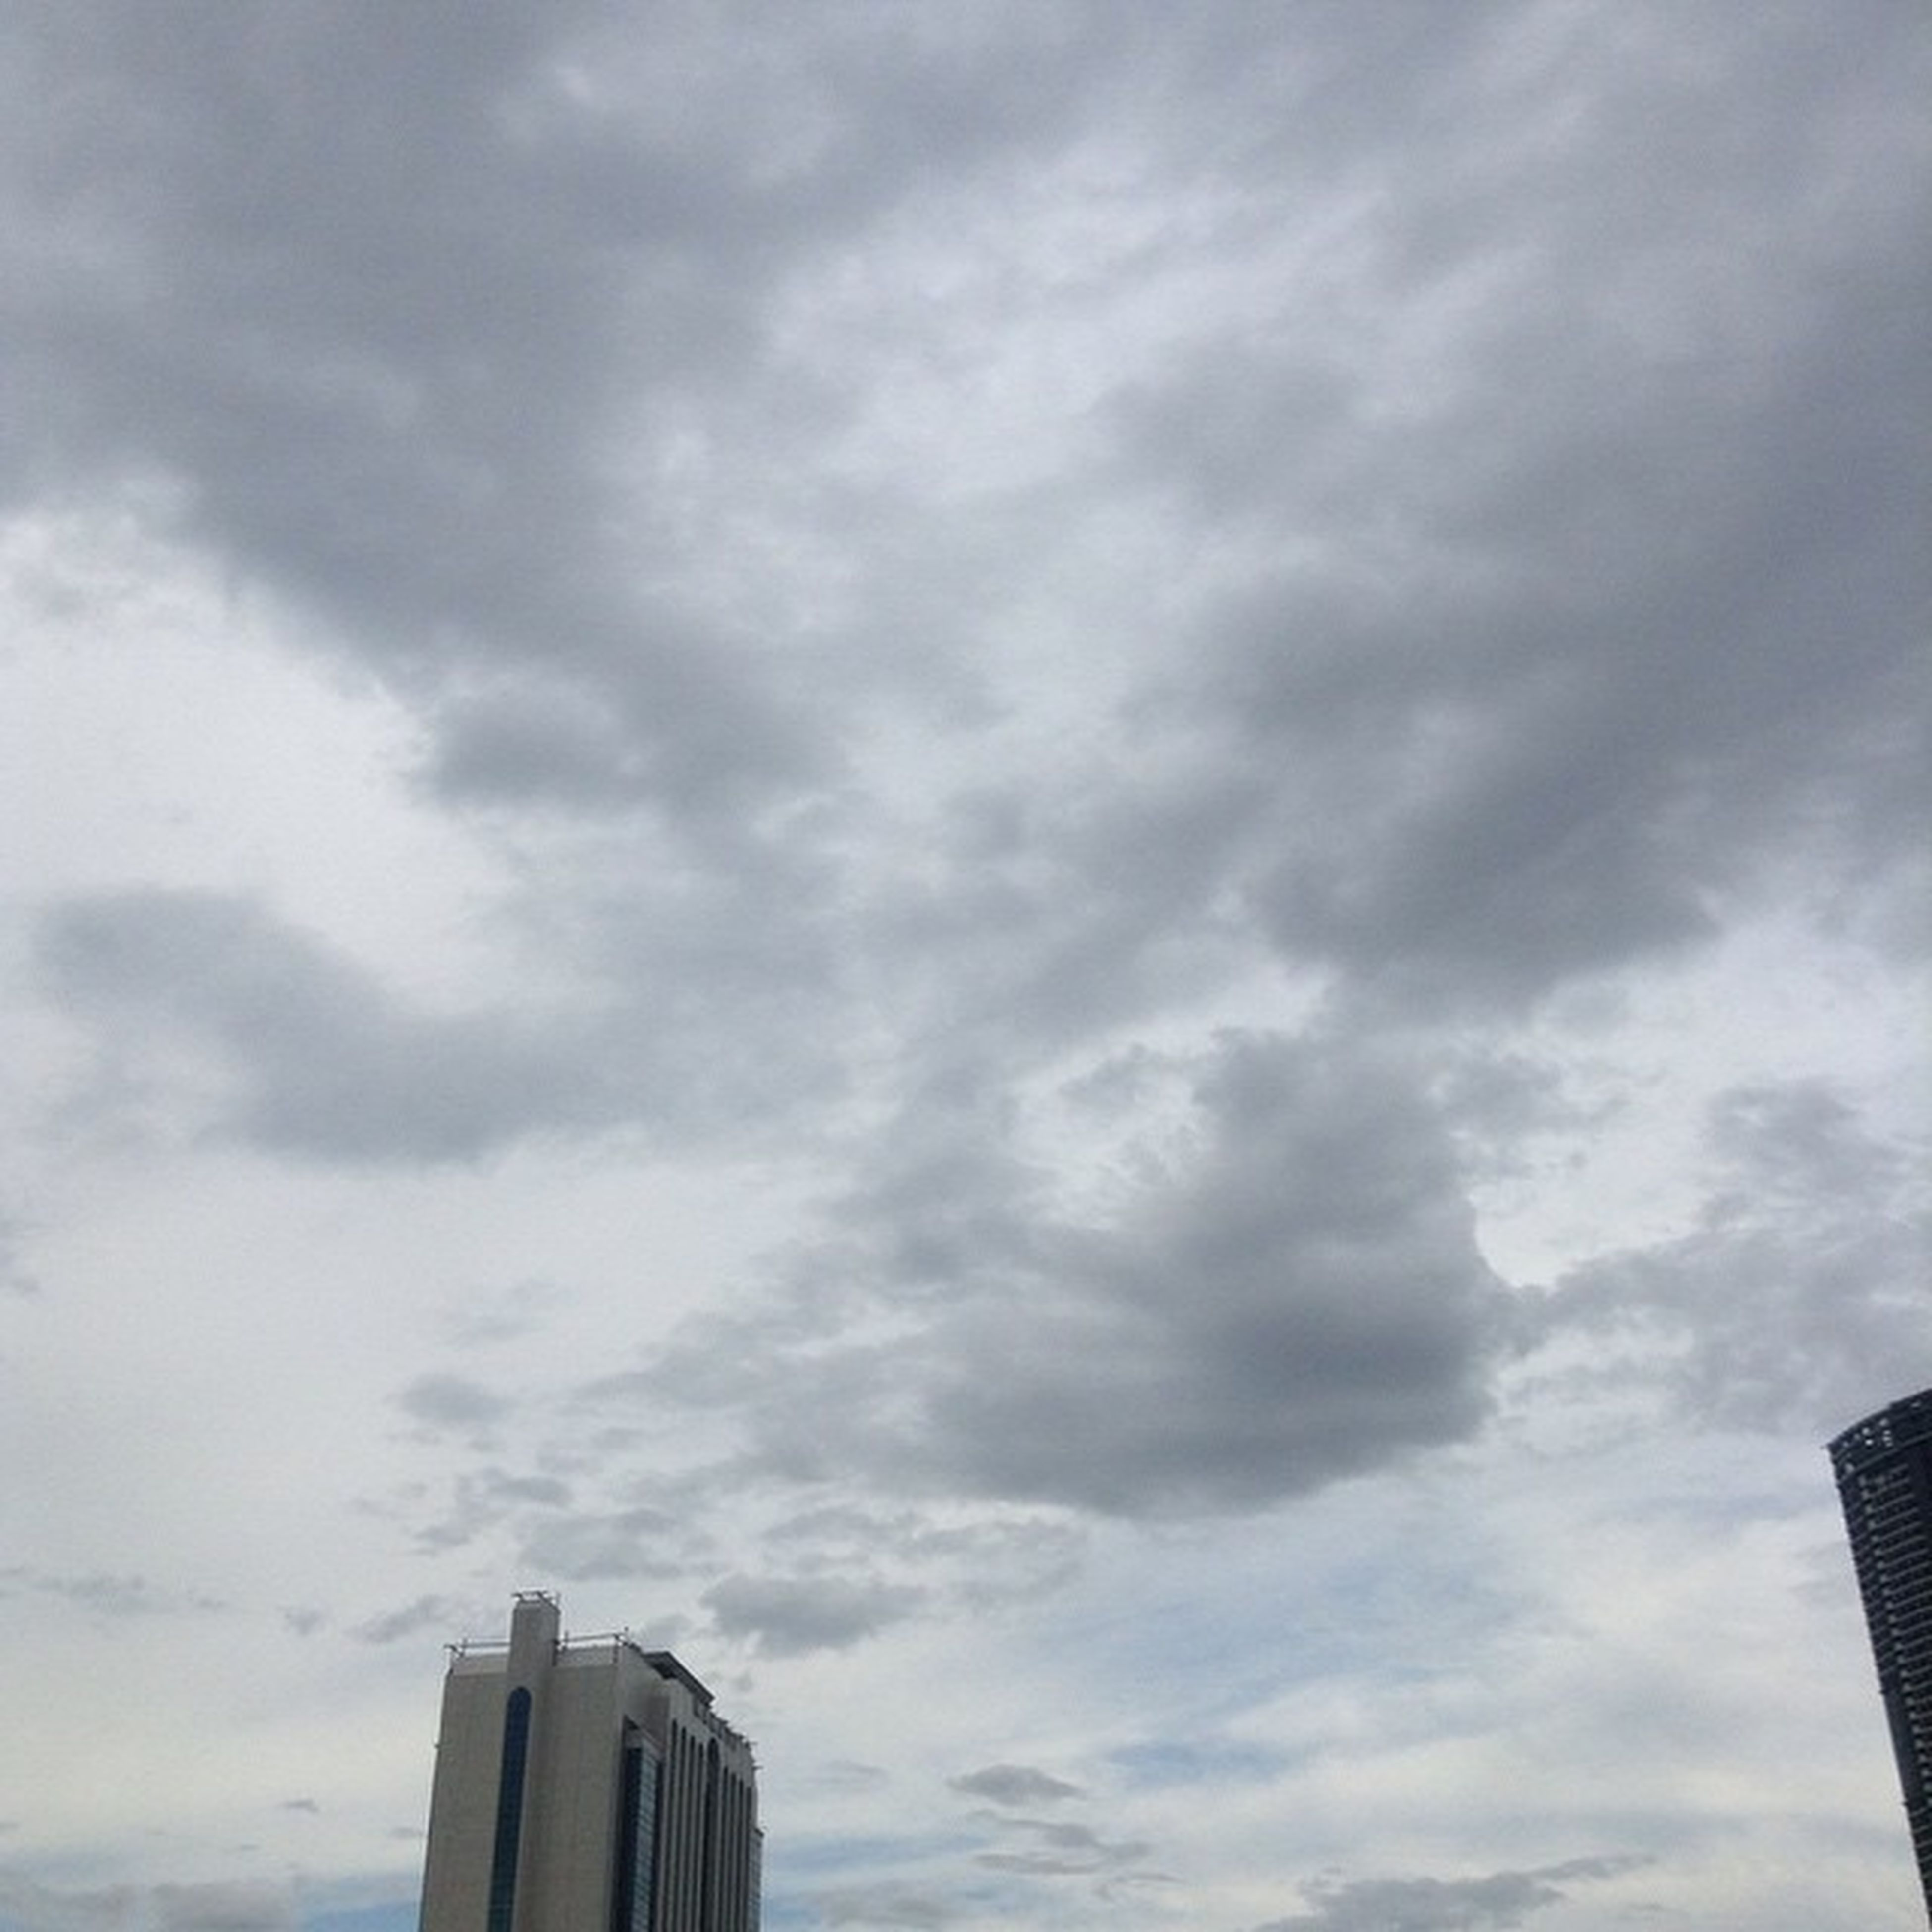 sky, low angle view, building exterior, architecture, cloud - sky, built structure, cloudy, cloud, weather, high section, building, overcast, outdoors, day, no people, cloudscape, city, tower, nature, storm cloud